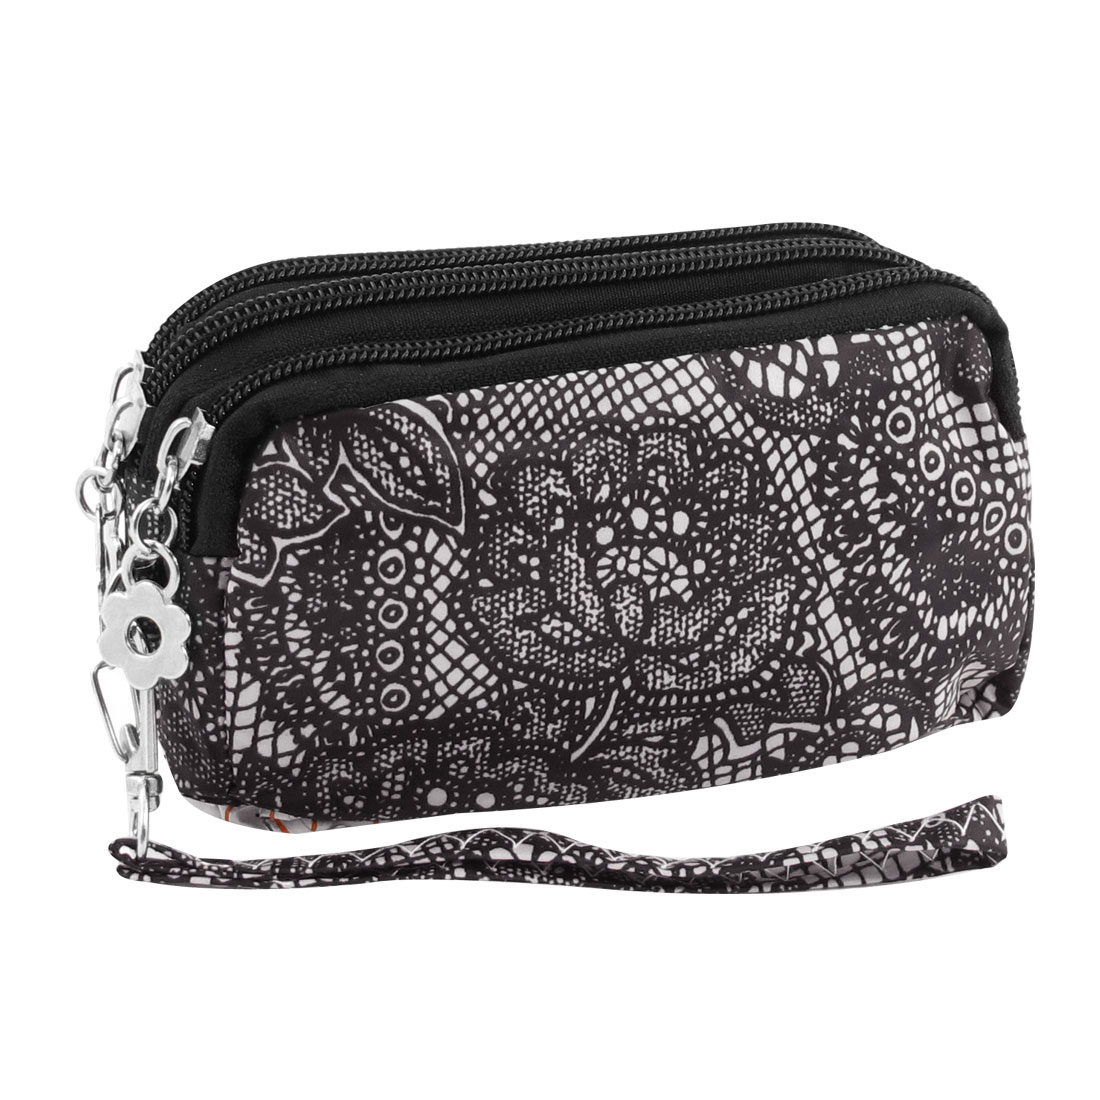 Ladies Nylon Lining Three Zip Pockets Cash Wristlet Purse Wallet Black White